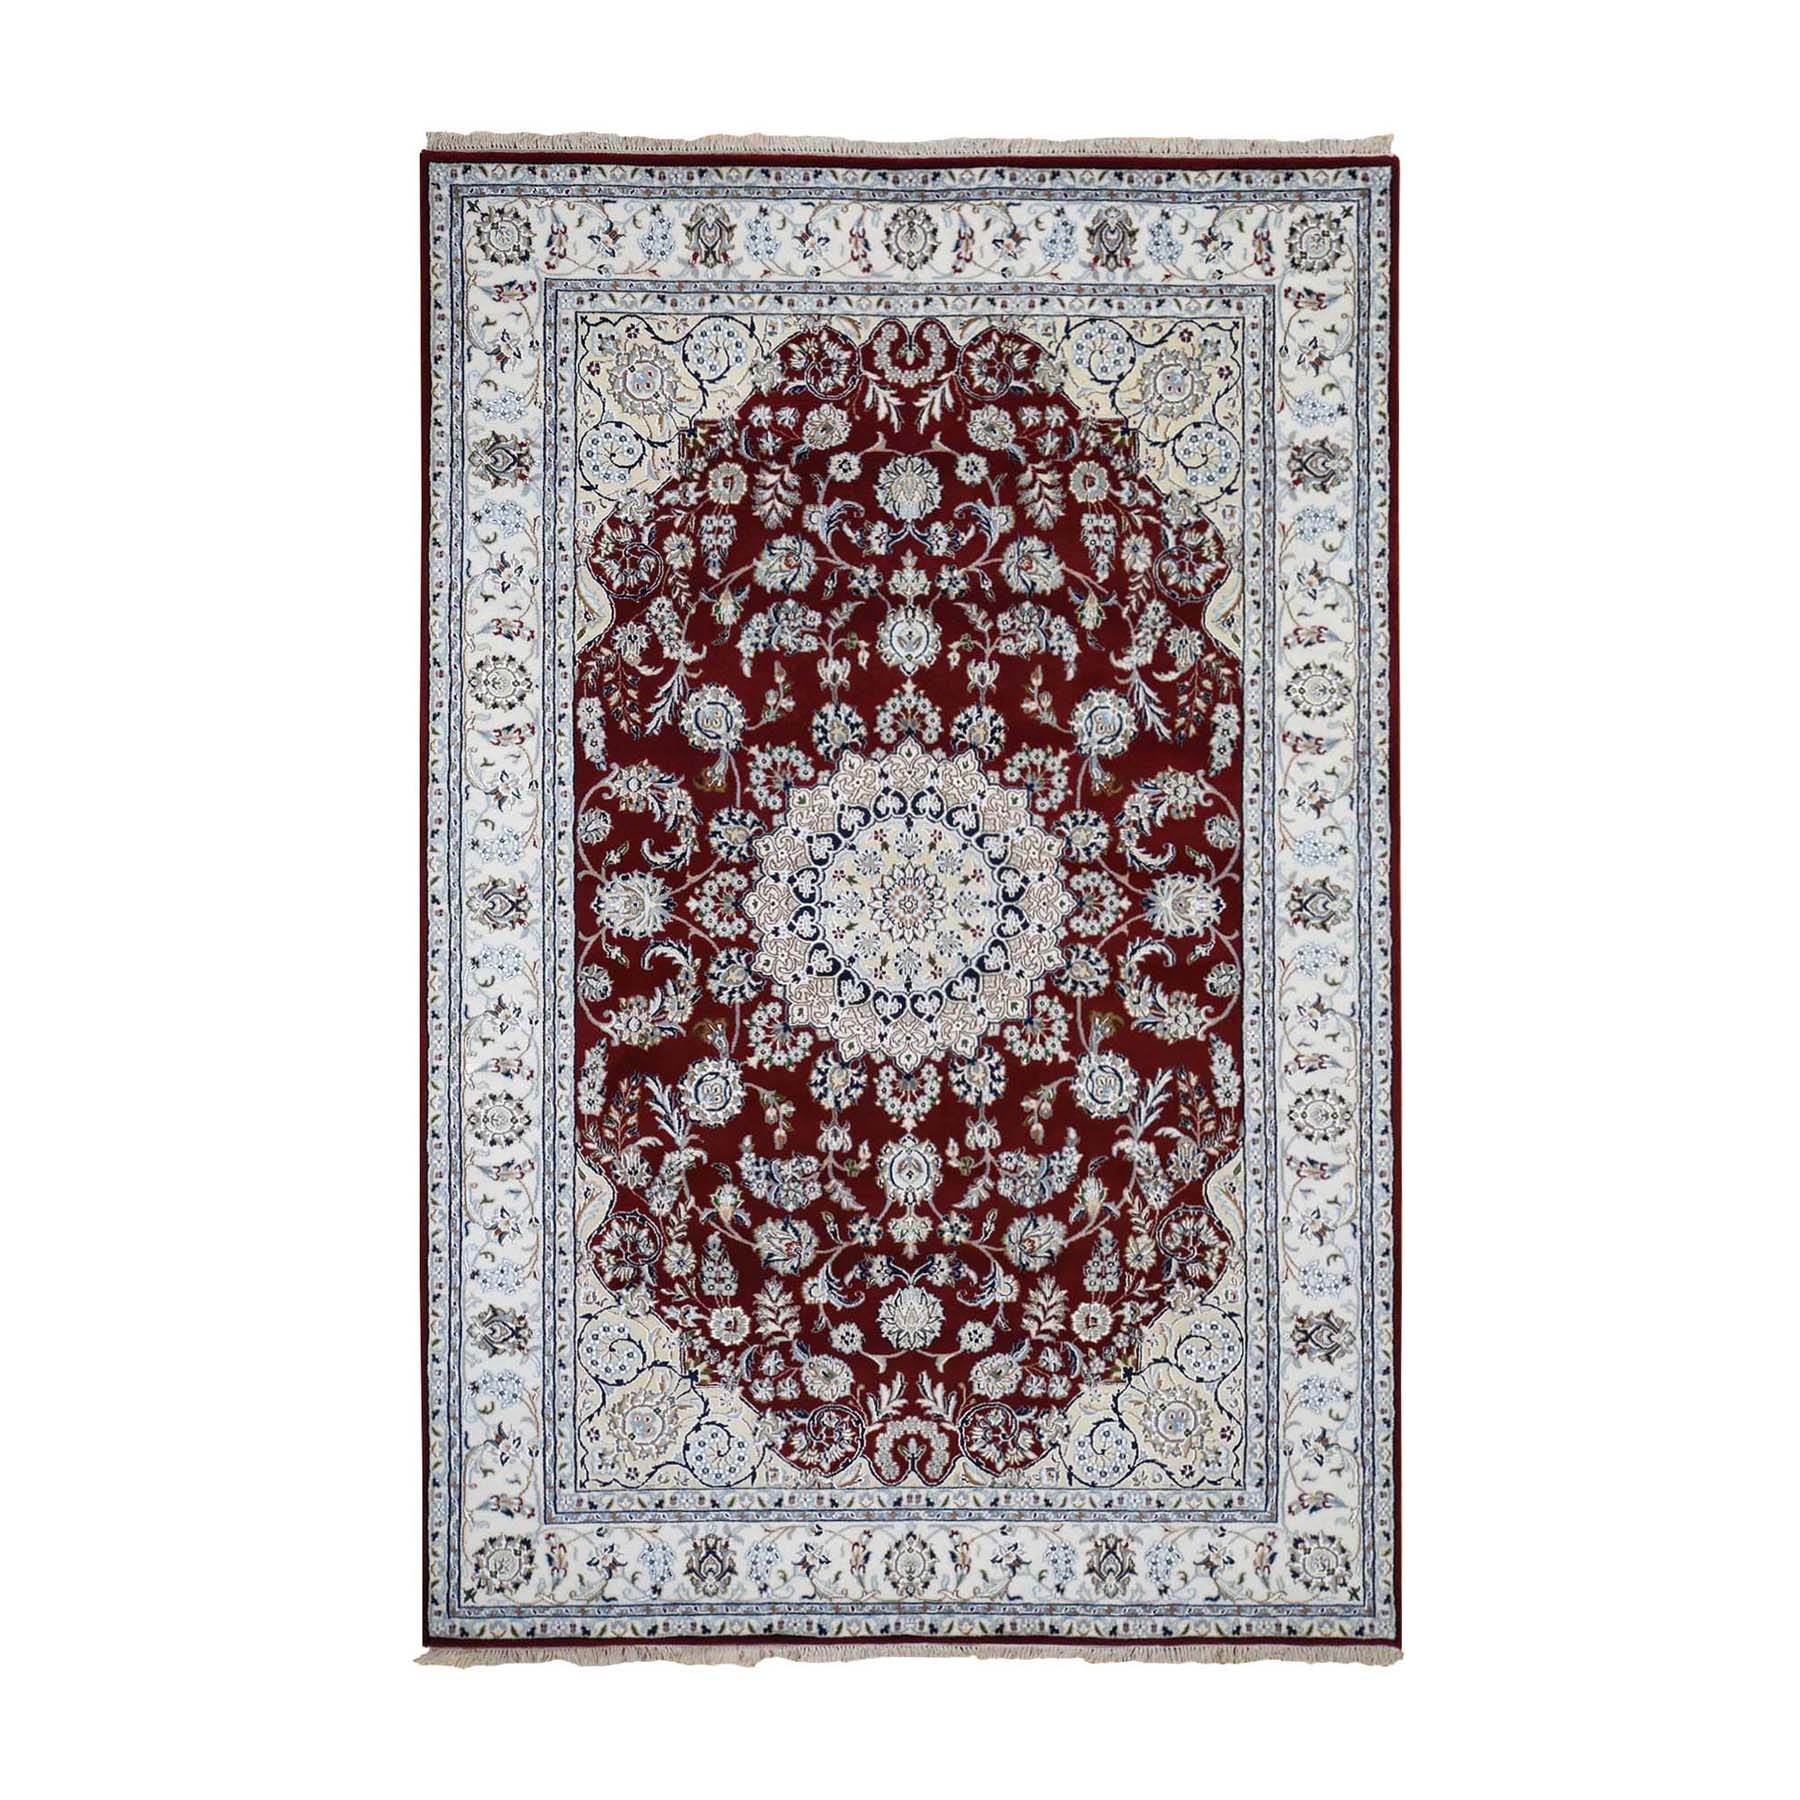 Pirniakan Collection Hand Knotted Red Rug No: 1119978